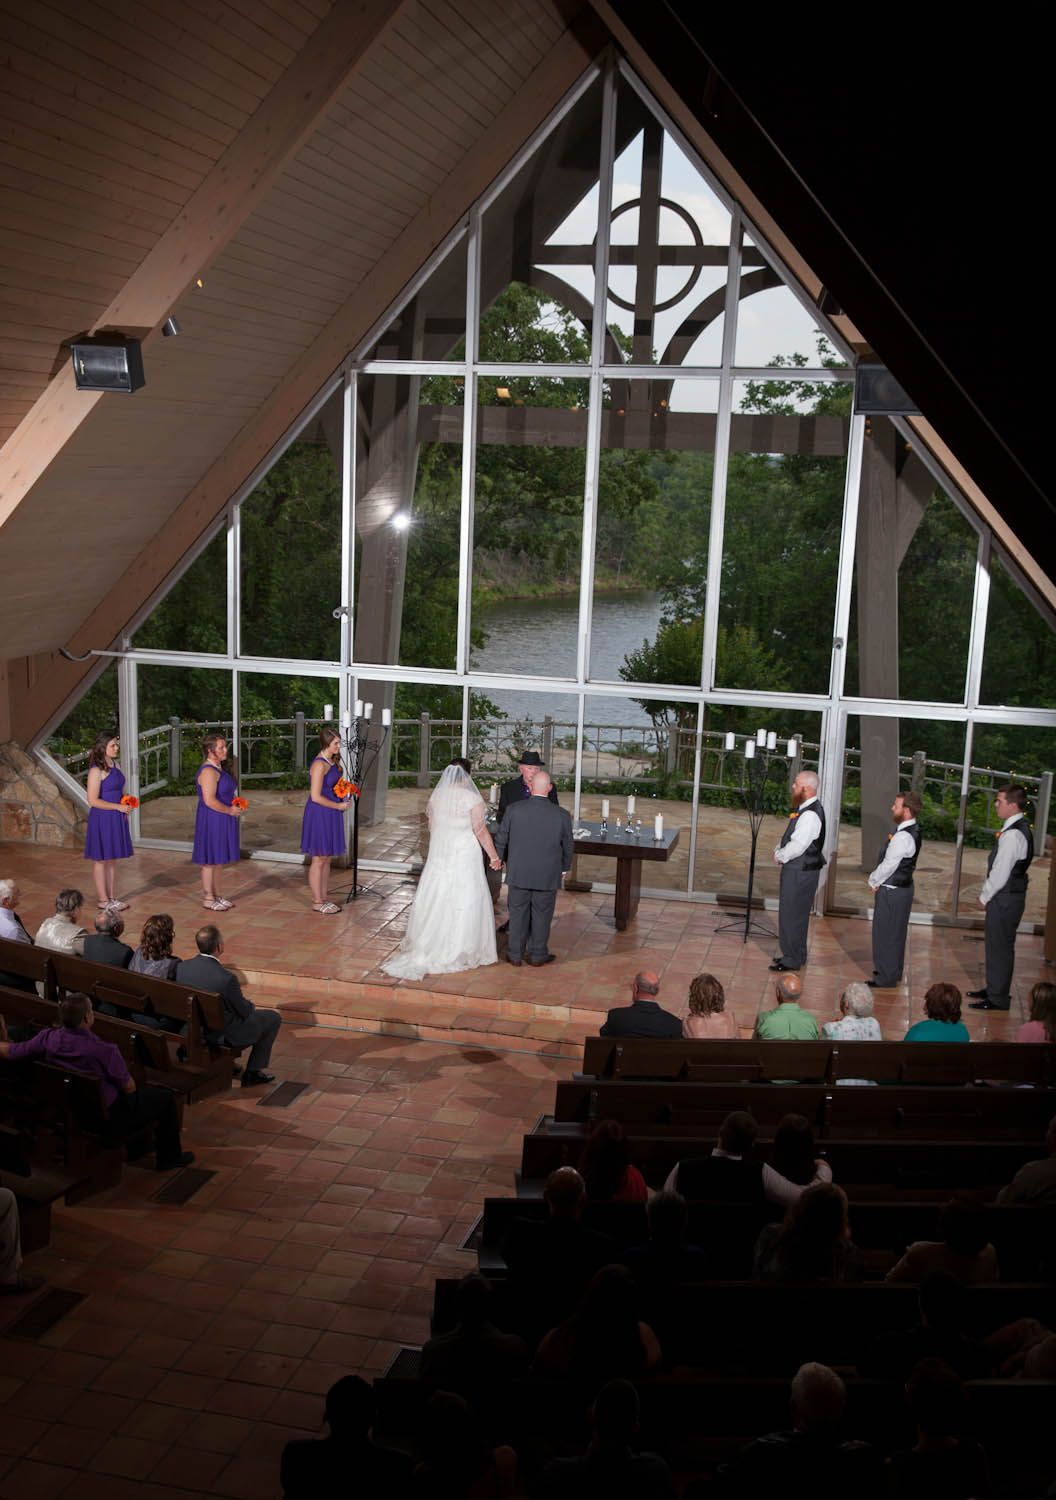 Loughridge wedding at kirkland chapel tulsa wedding loughridge wedding at kirkland chapel tulsa wedding loughridgewedding oklahoma junglespirit Gallery